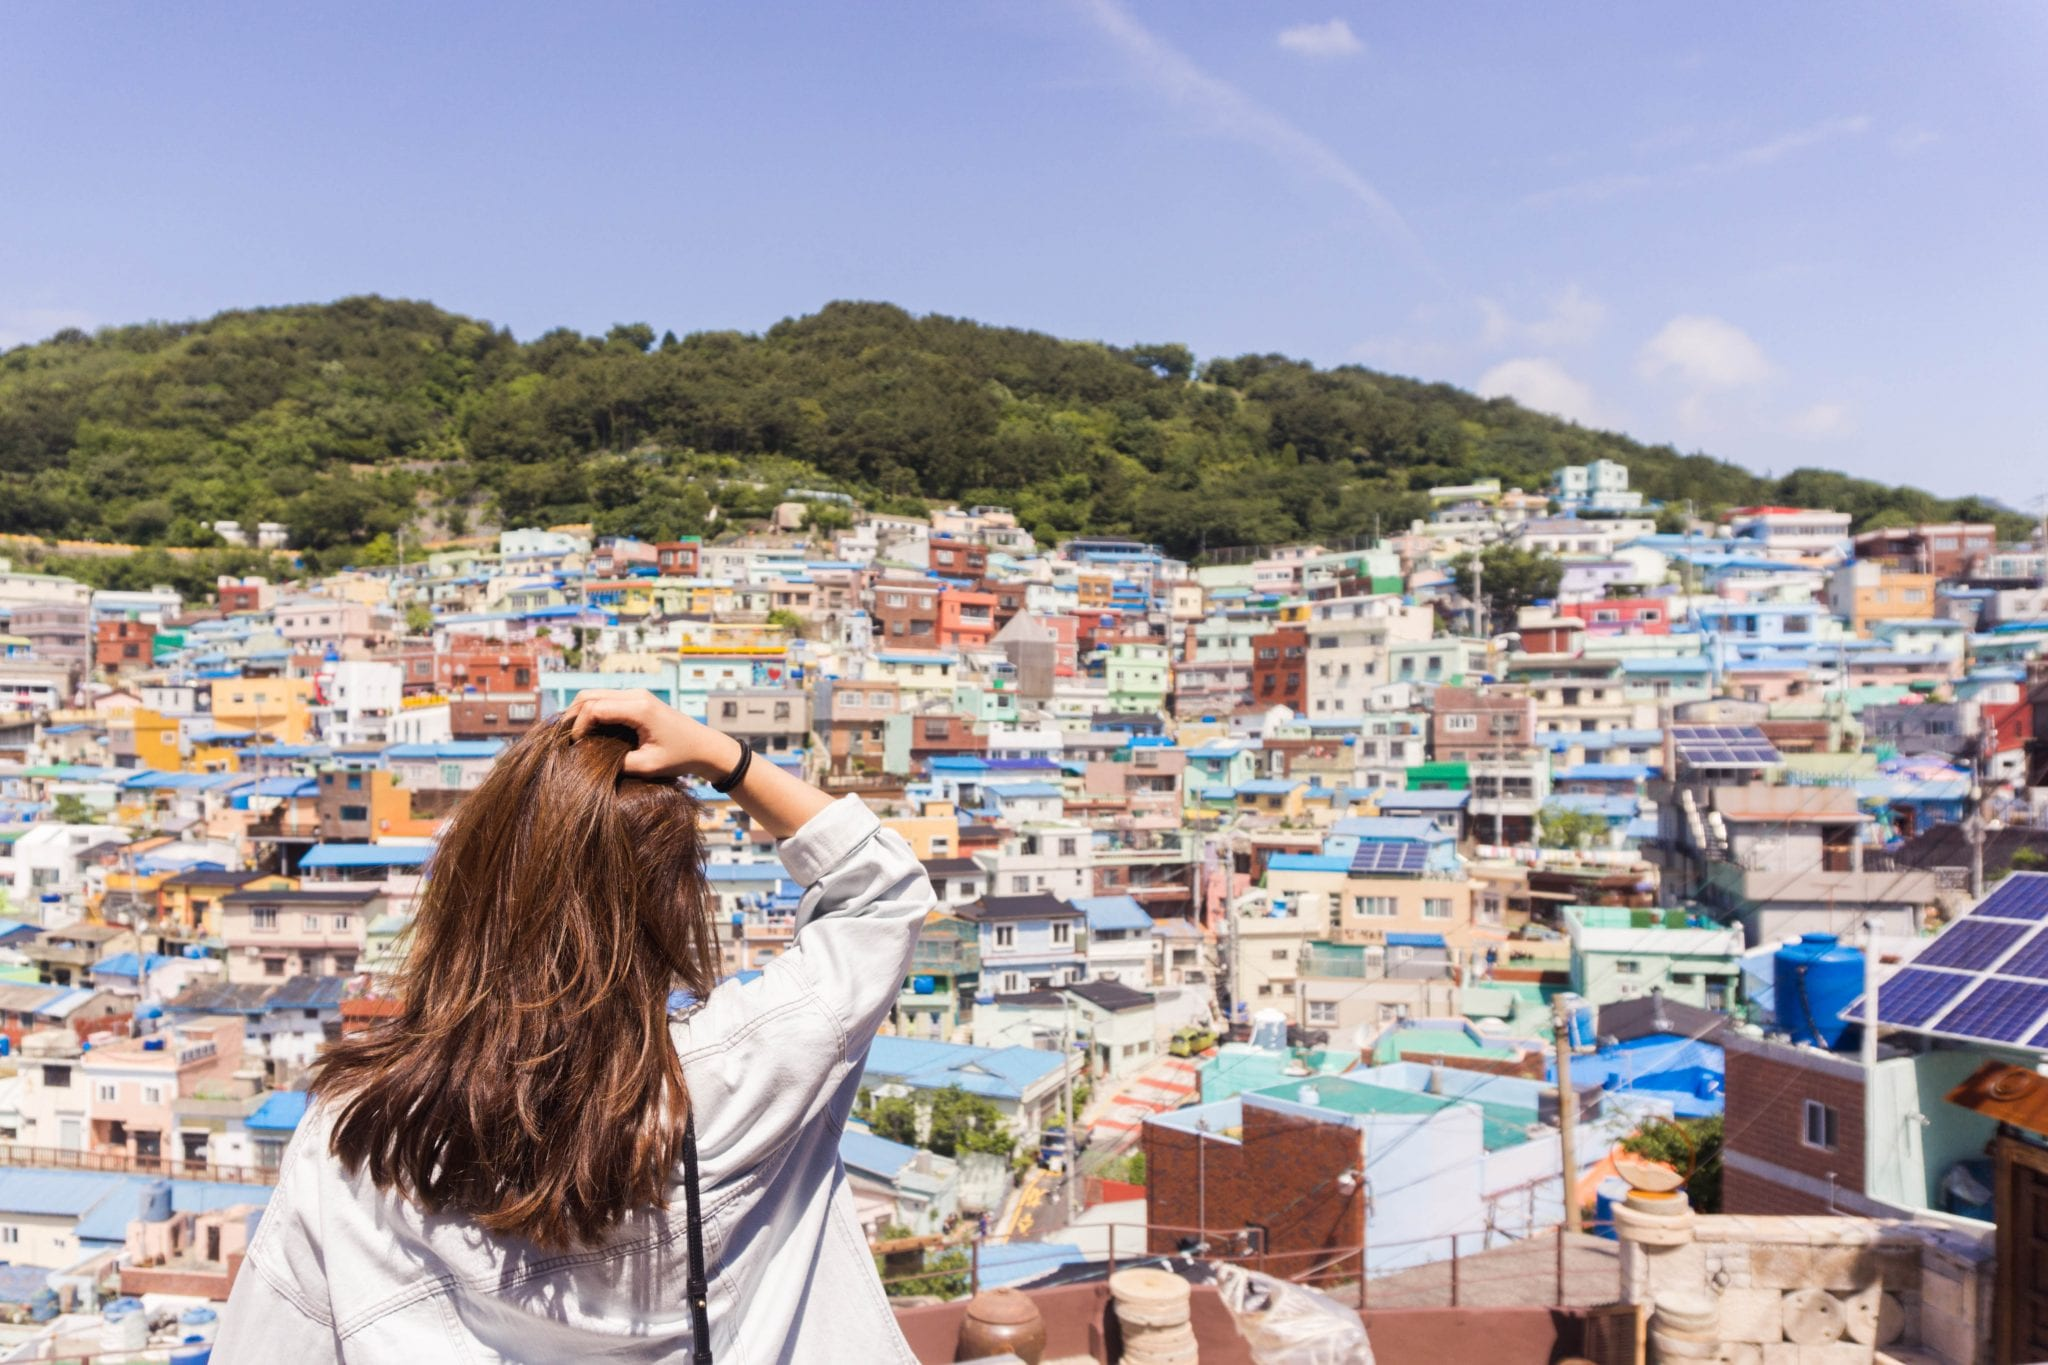 Gamcheon Culture Village, Busan